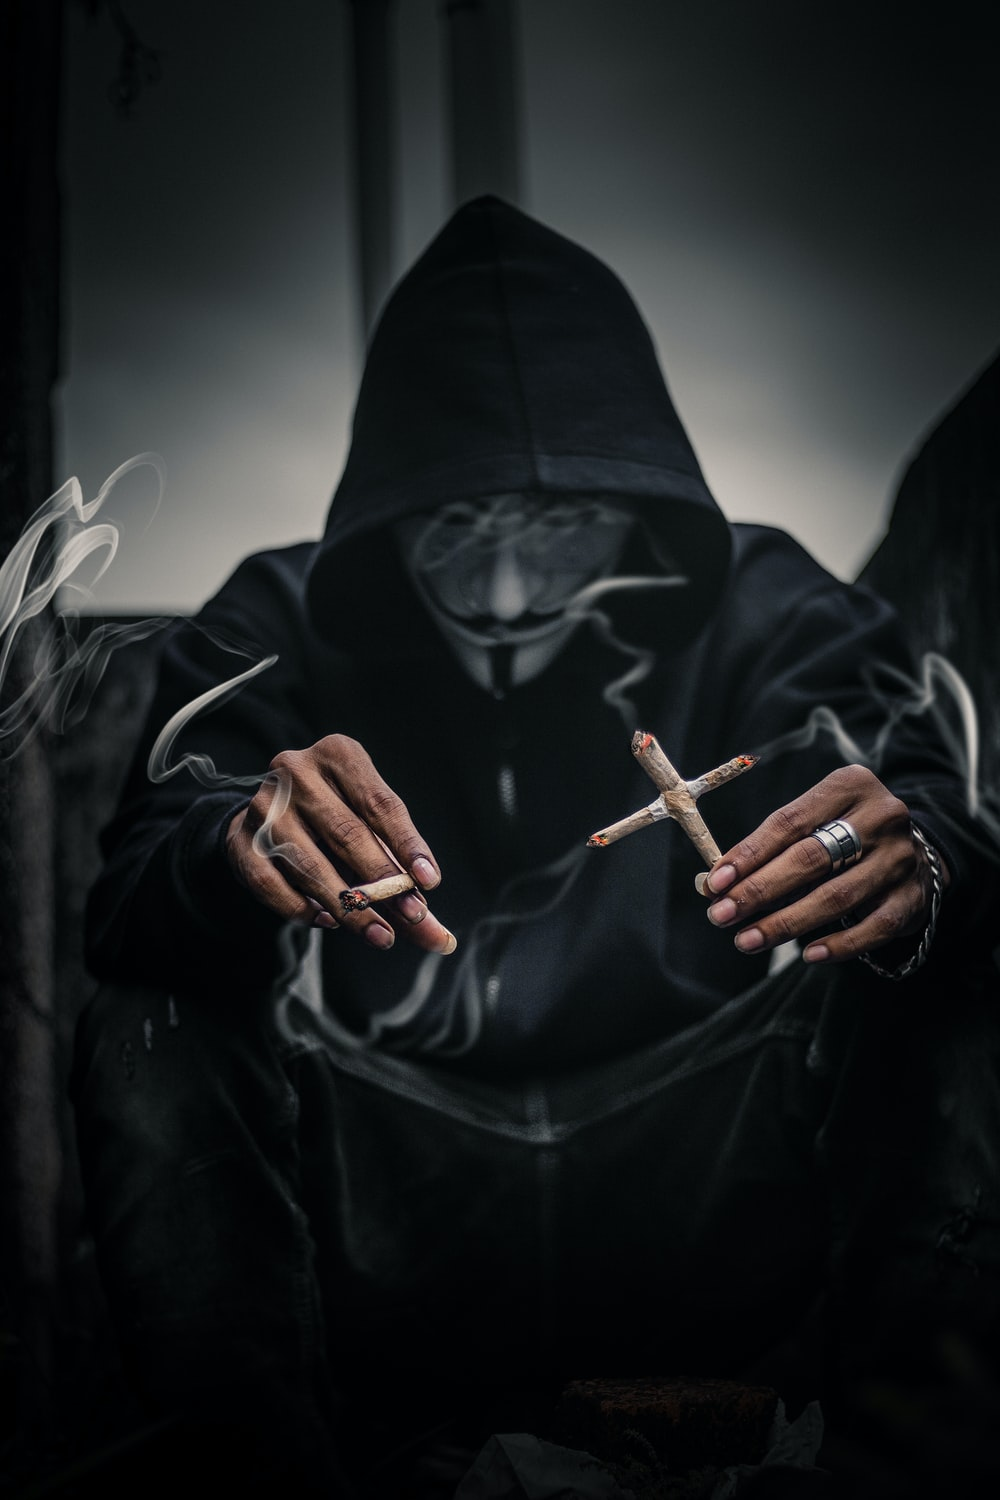 person in Guy Fawkes mask holding cross-shaped lighted cigarettes on his left with lighted joice on right hand